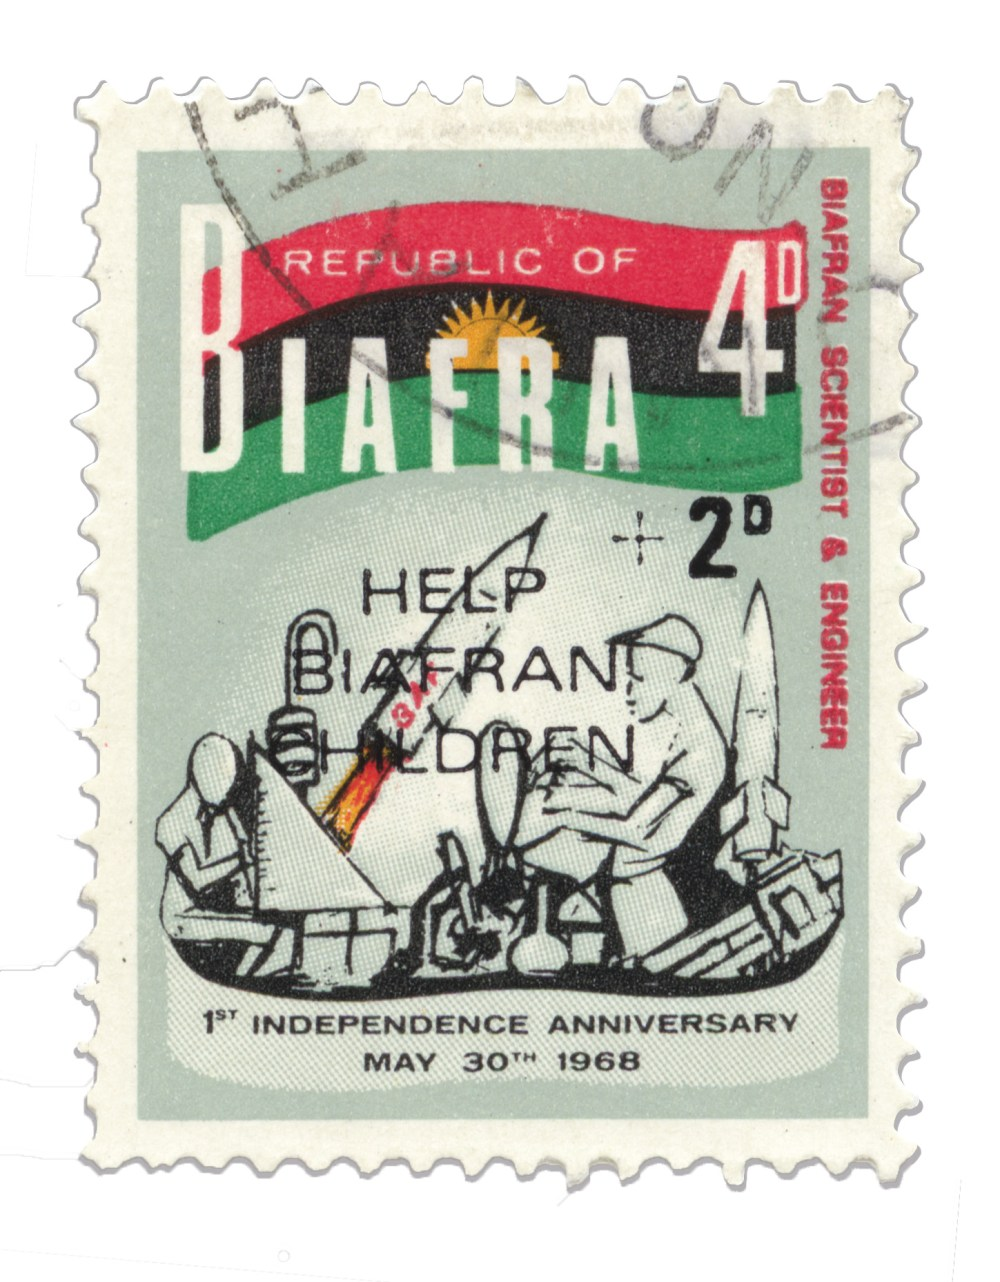 forgotten nations and their postage stamp design - biafra